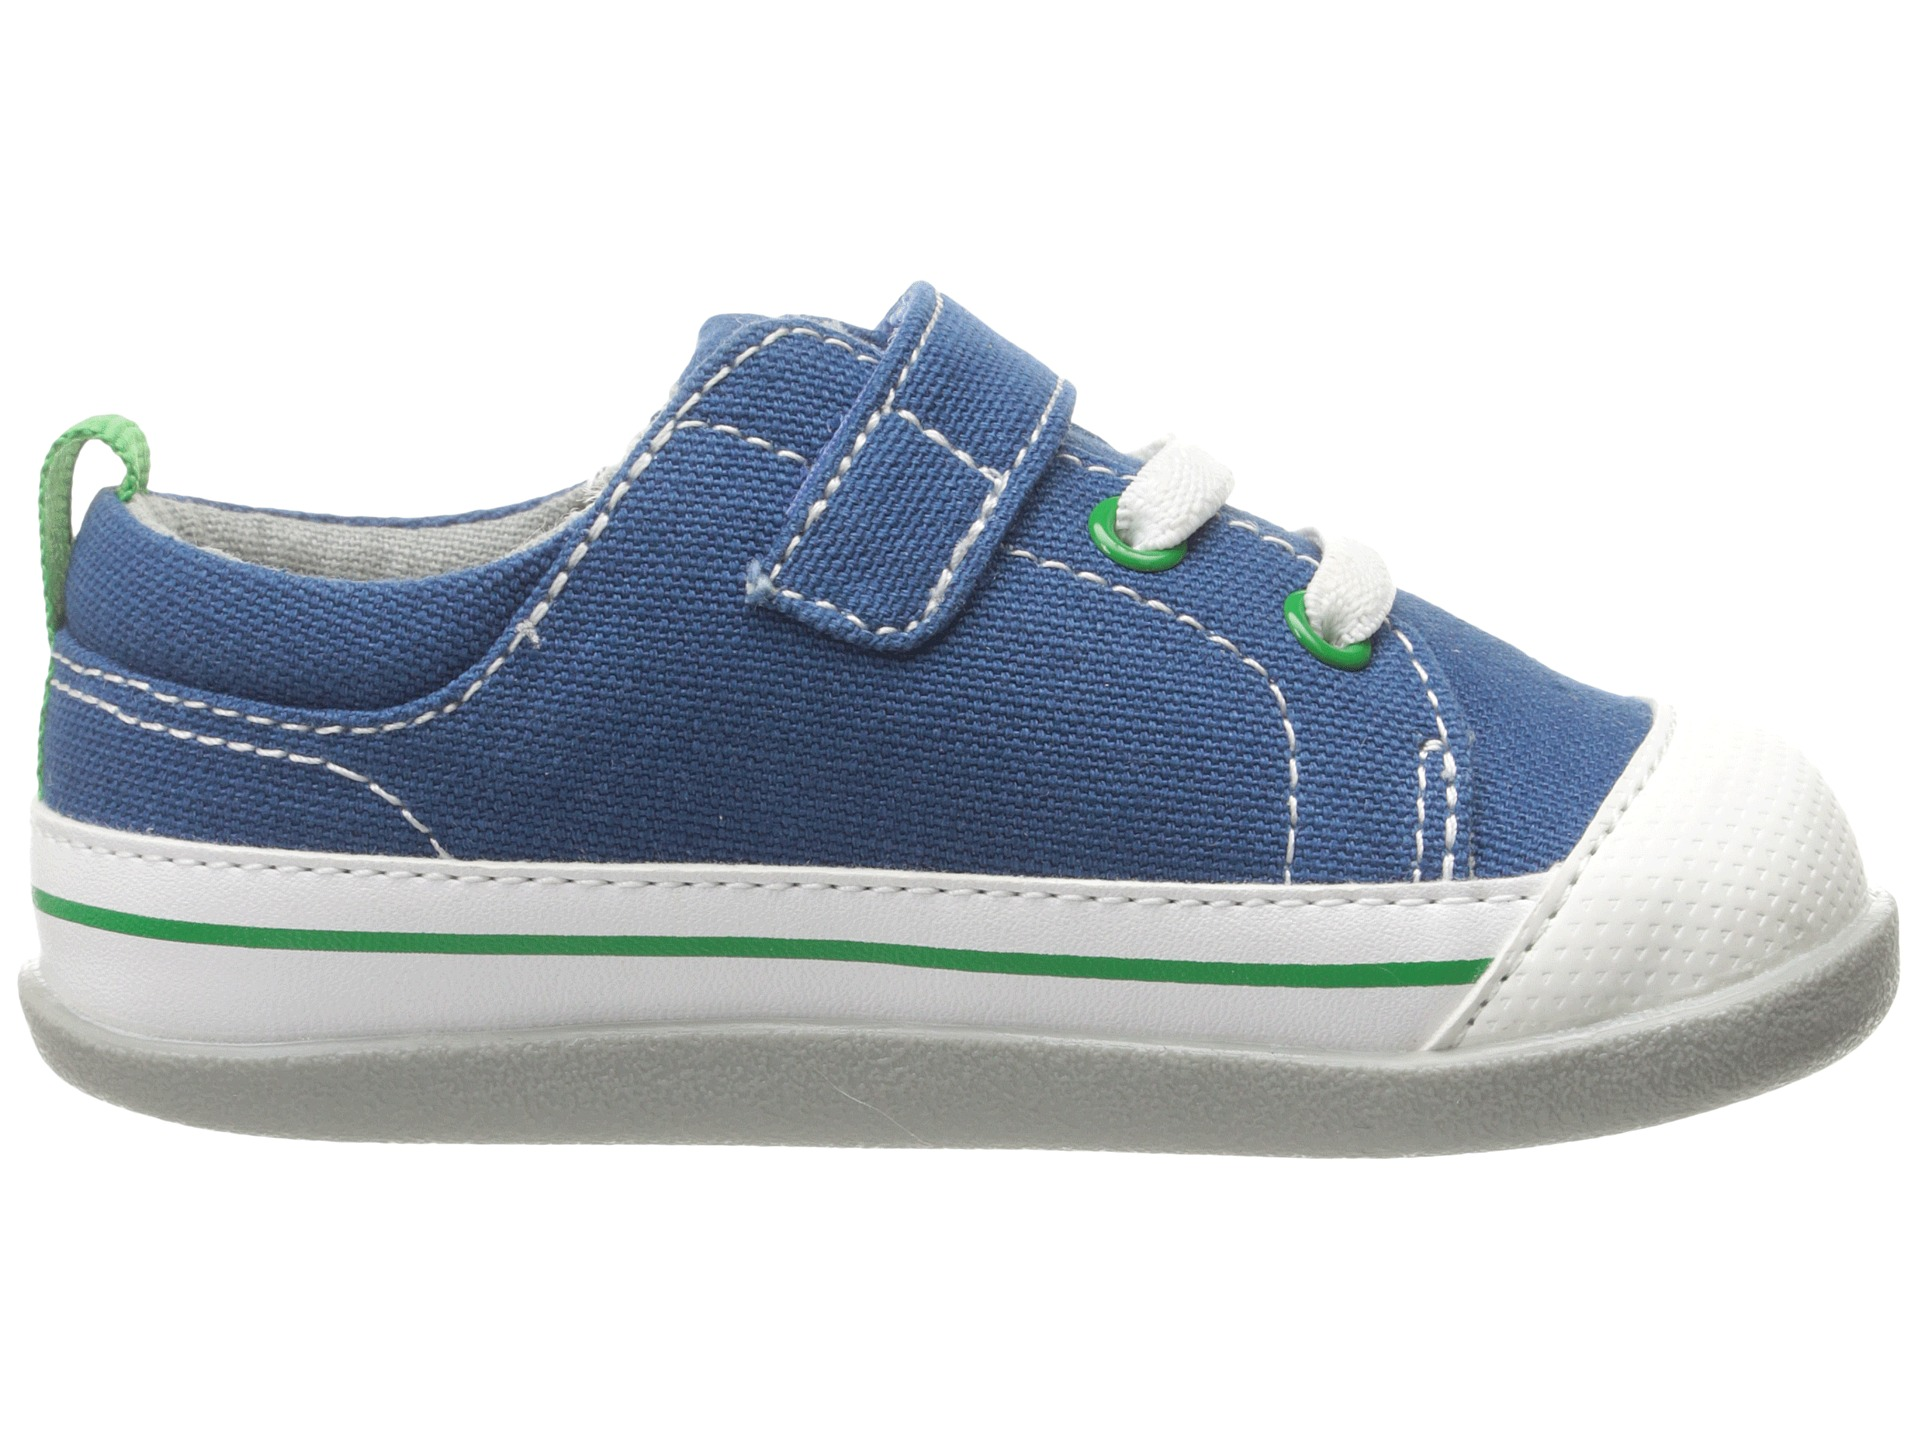 Shop for brands you love on sale. Discounted shoes, clothing, accessories and more at bushlibrary.ml! Score on the Style, Score on the Price.